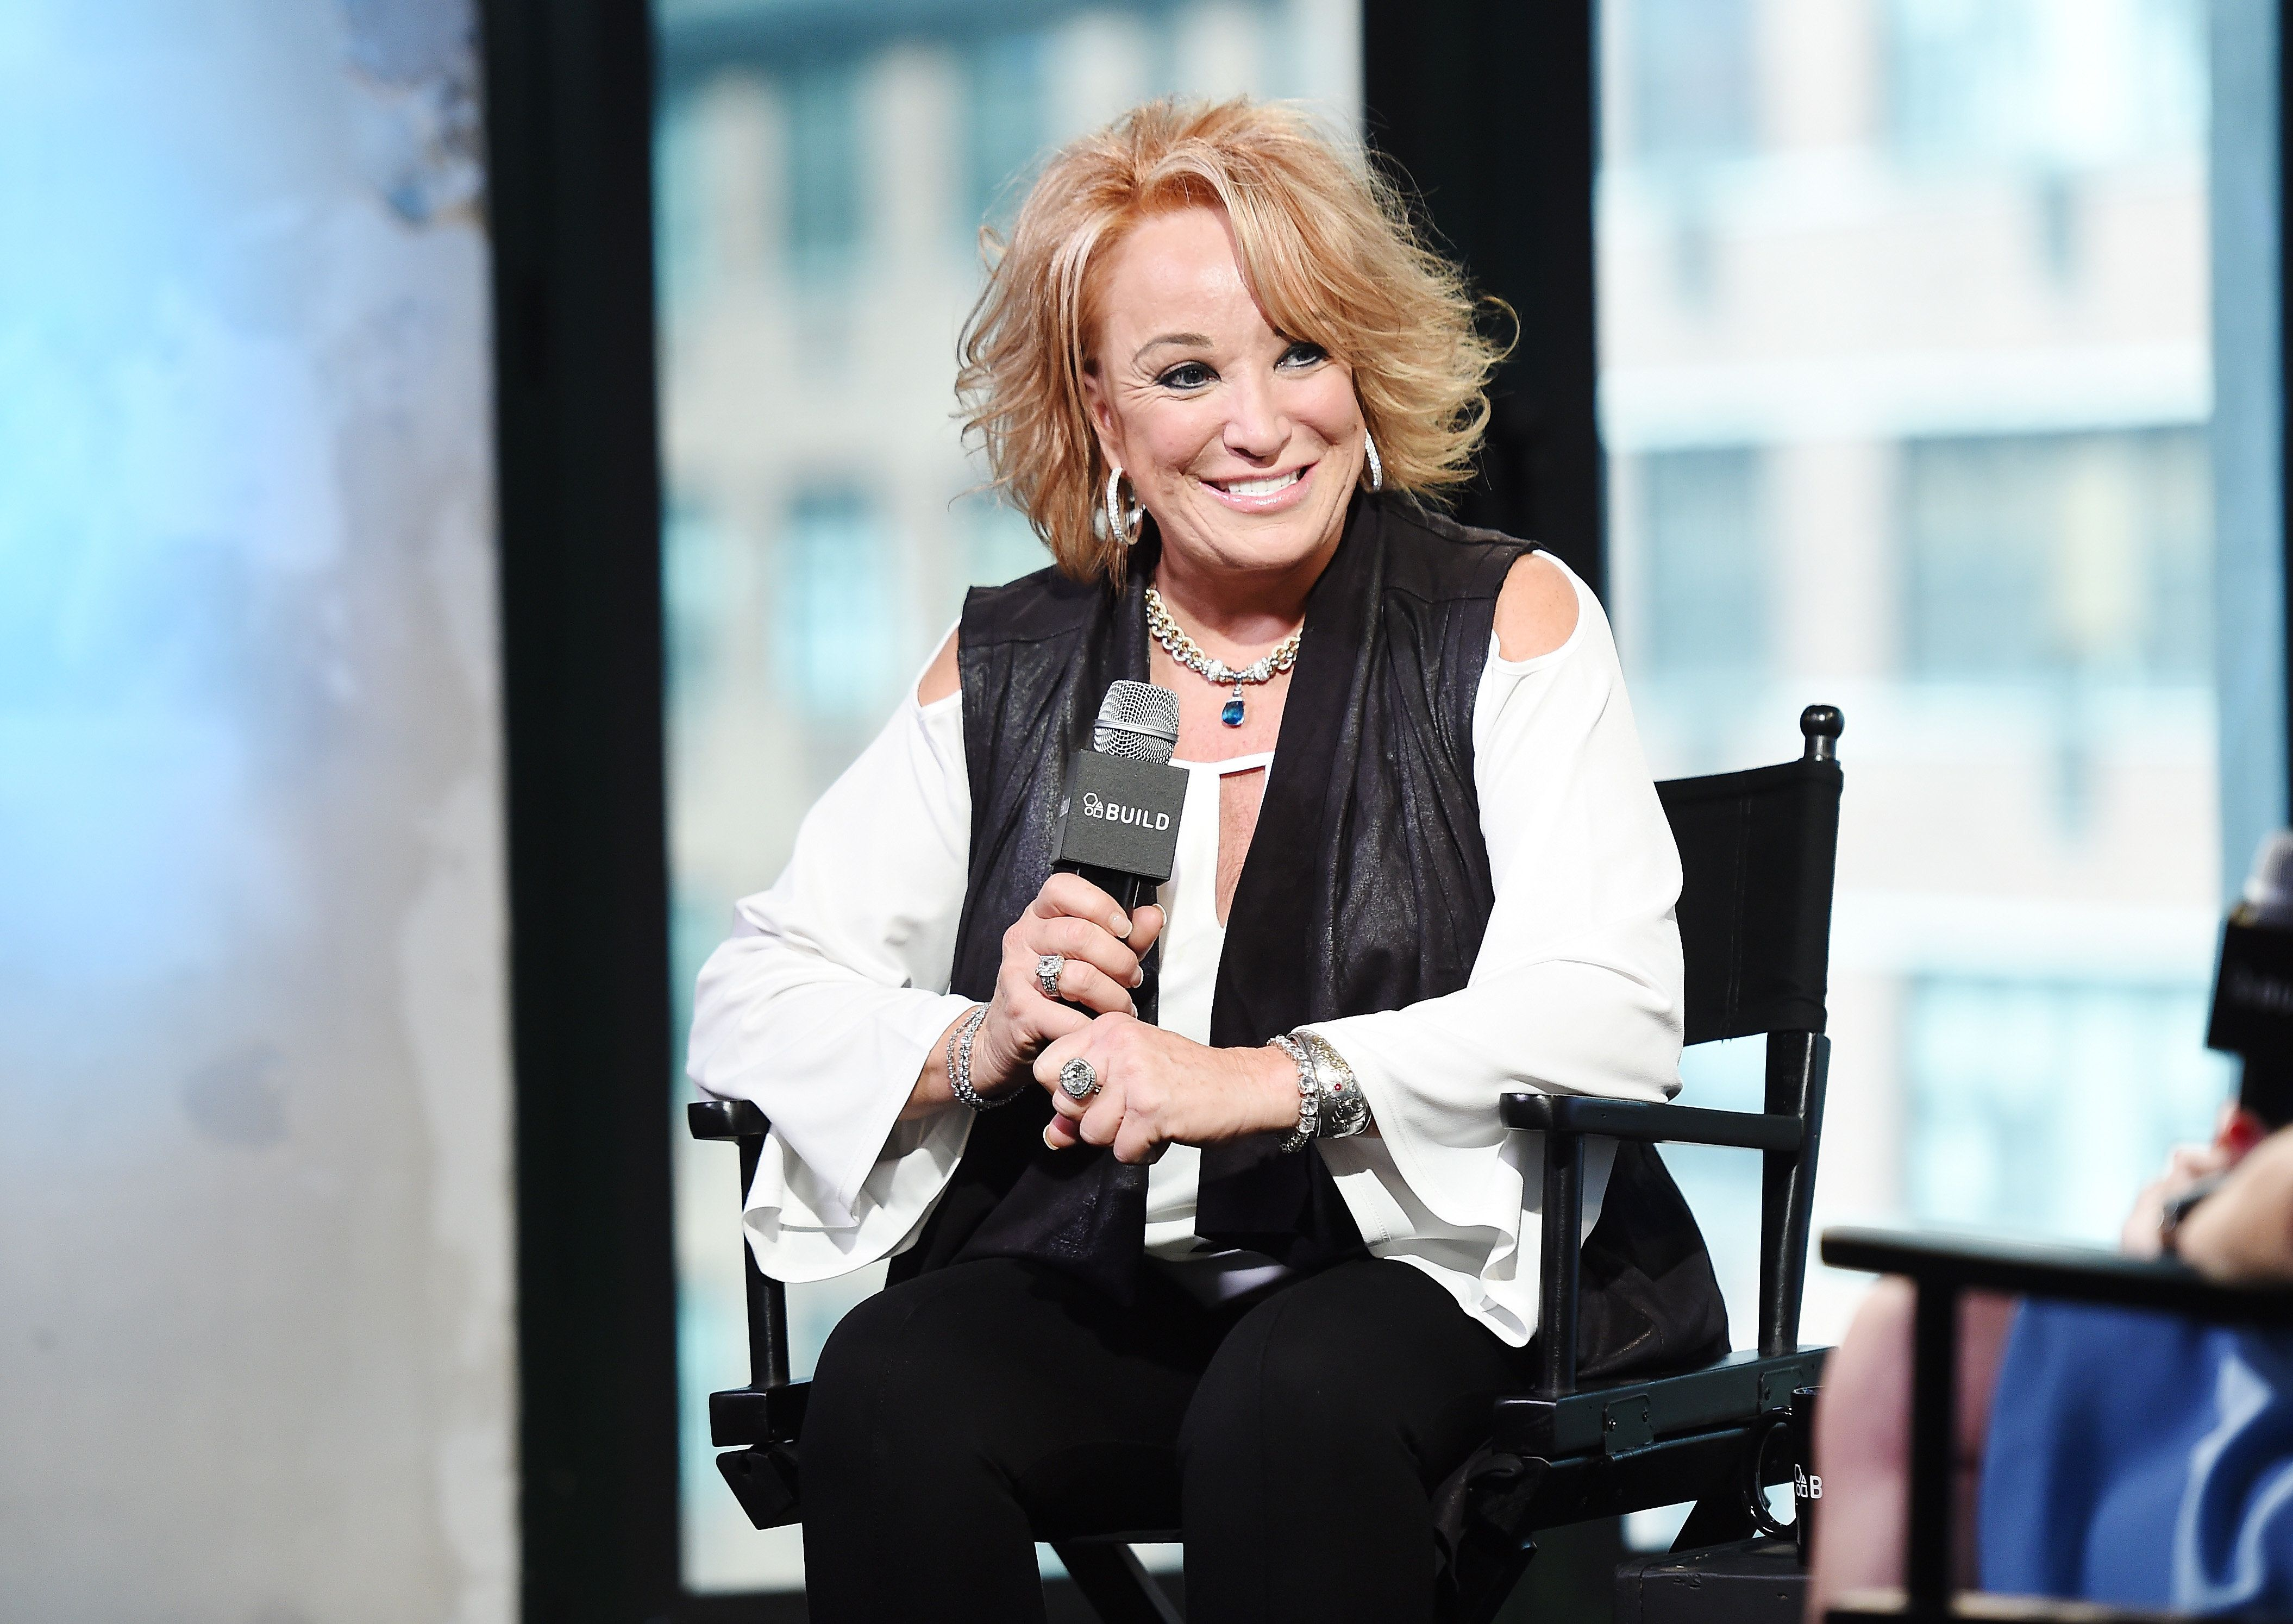 Tanya Tucker attends AOL Build Presents Tanya Tucker Discussing Her North American Tour And Sweet Relief Musicians Fund at AO